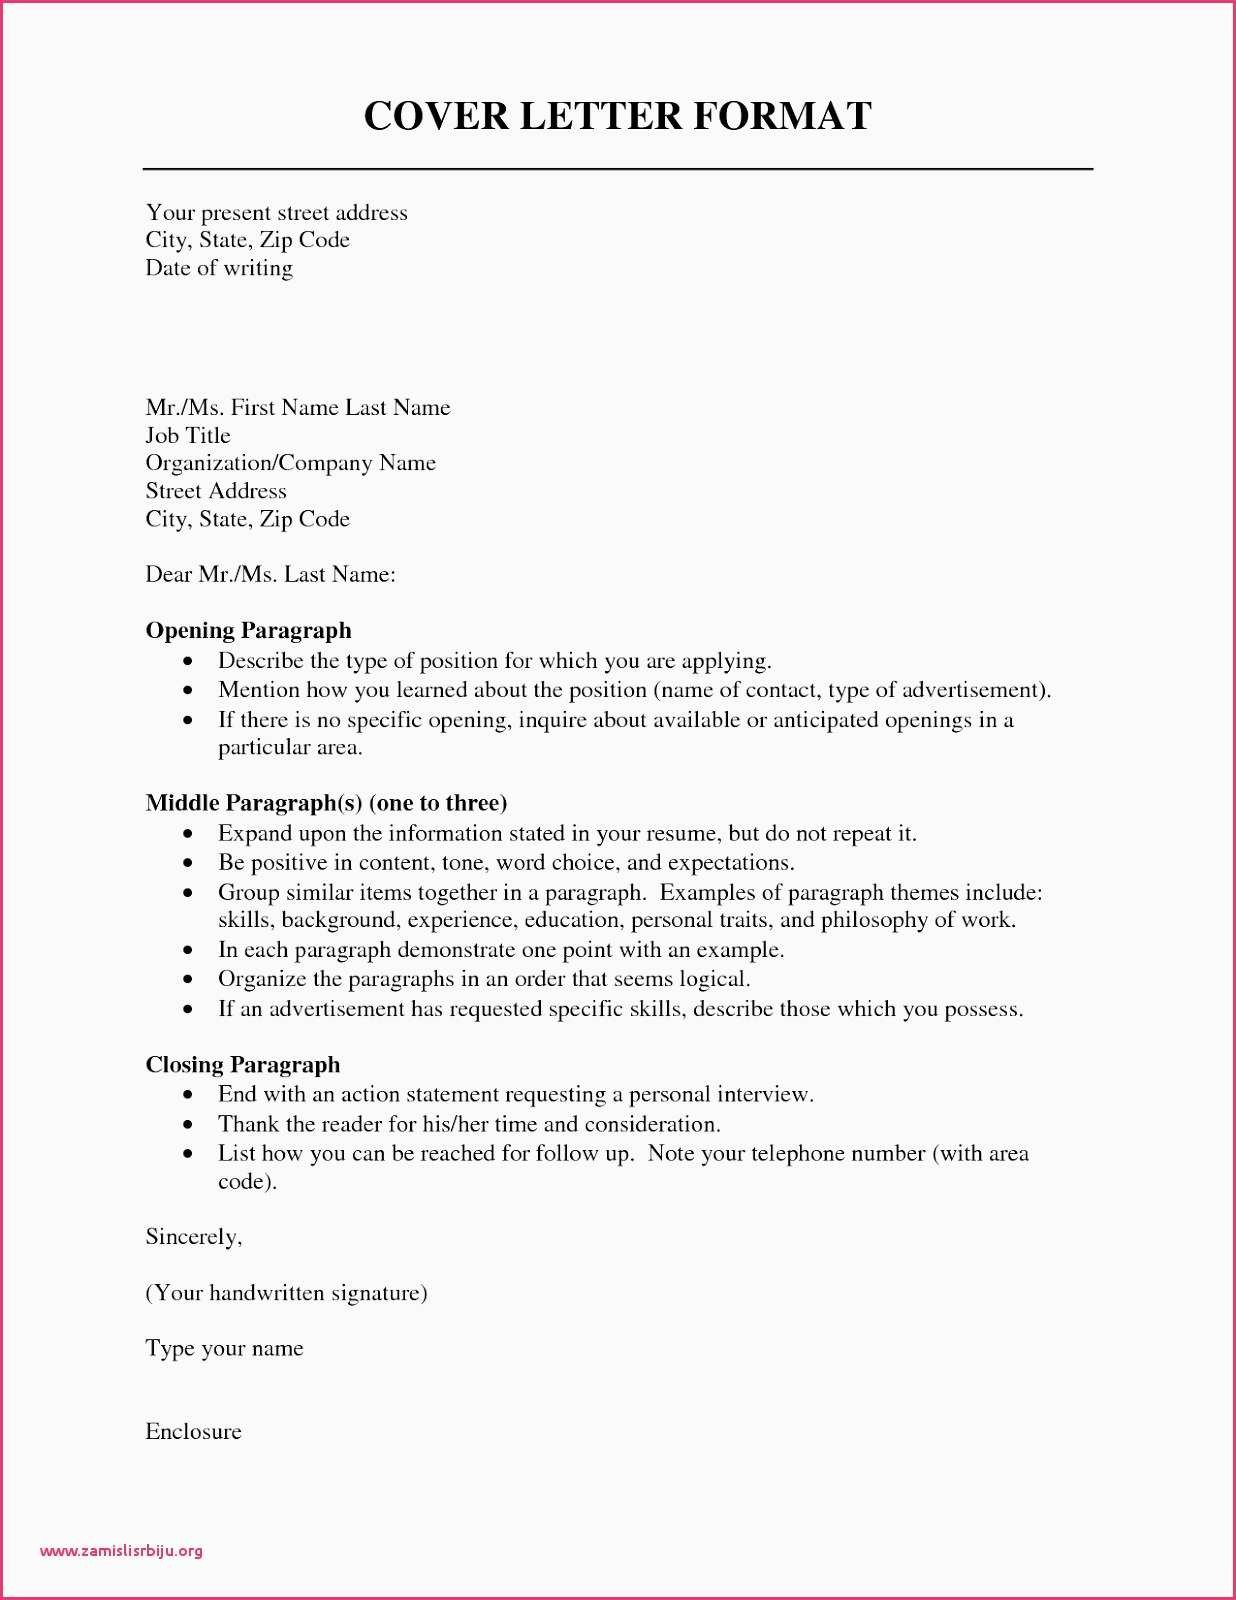 California Apostille Cover Letter Sample 12 13 Cover Letter for Apostille Request